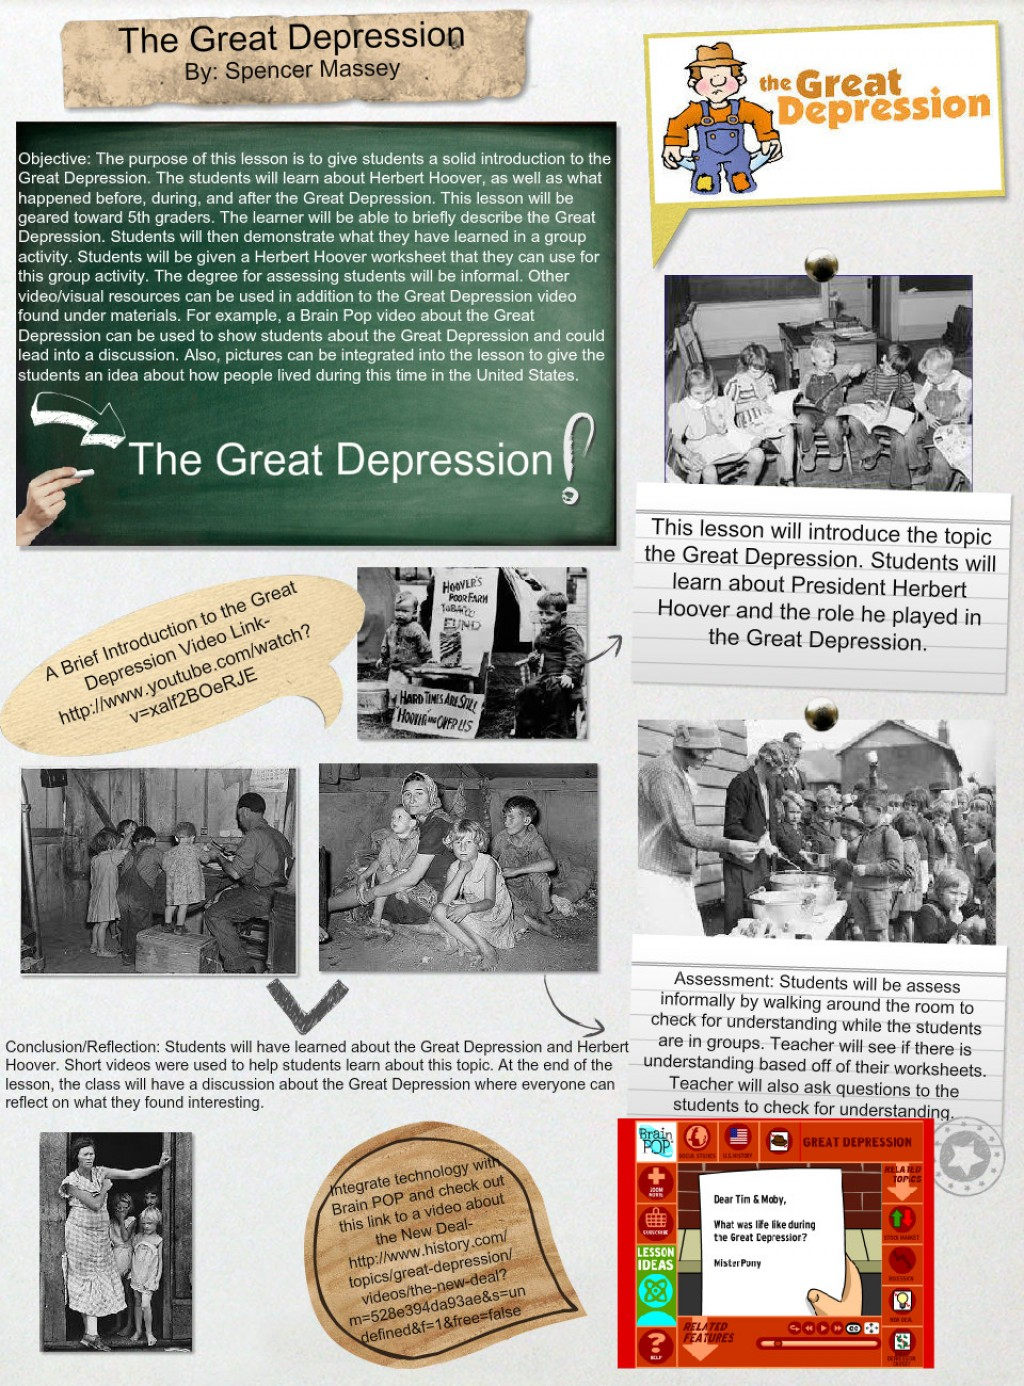 010 Conclusion Of The Great Depression Essay Example Amazing Large